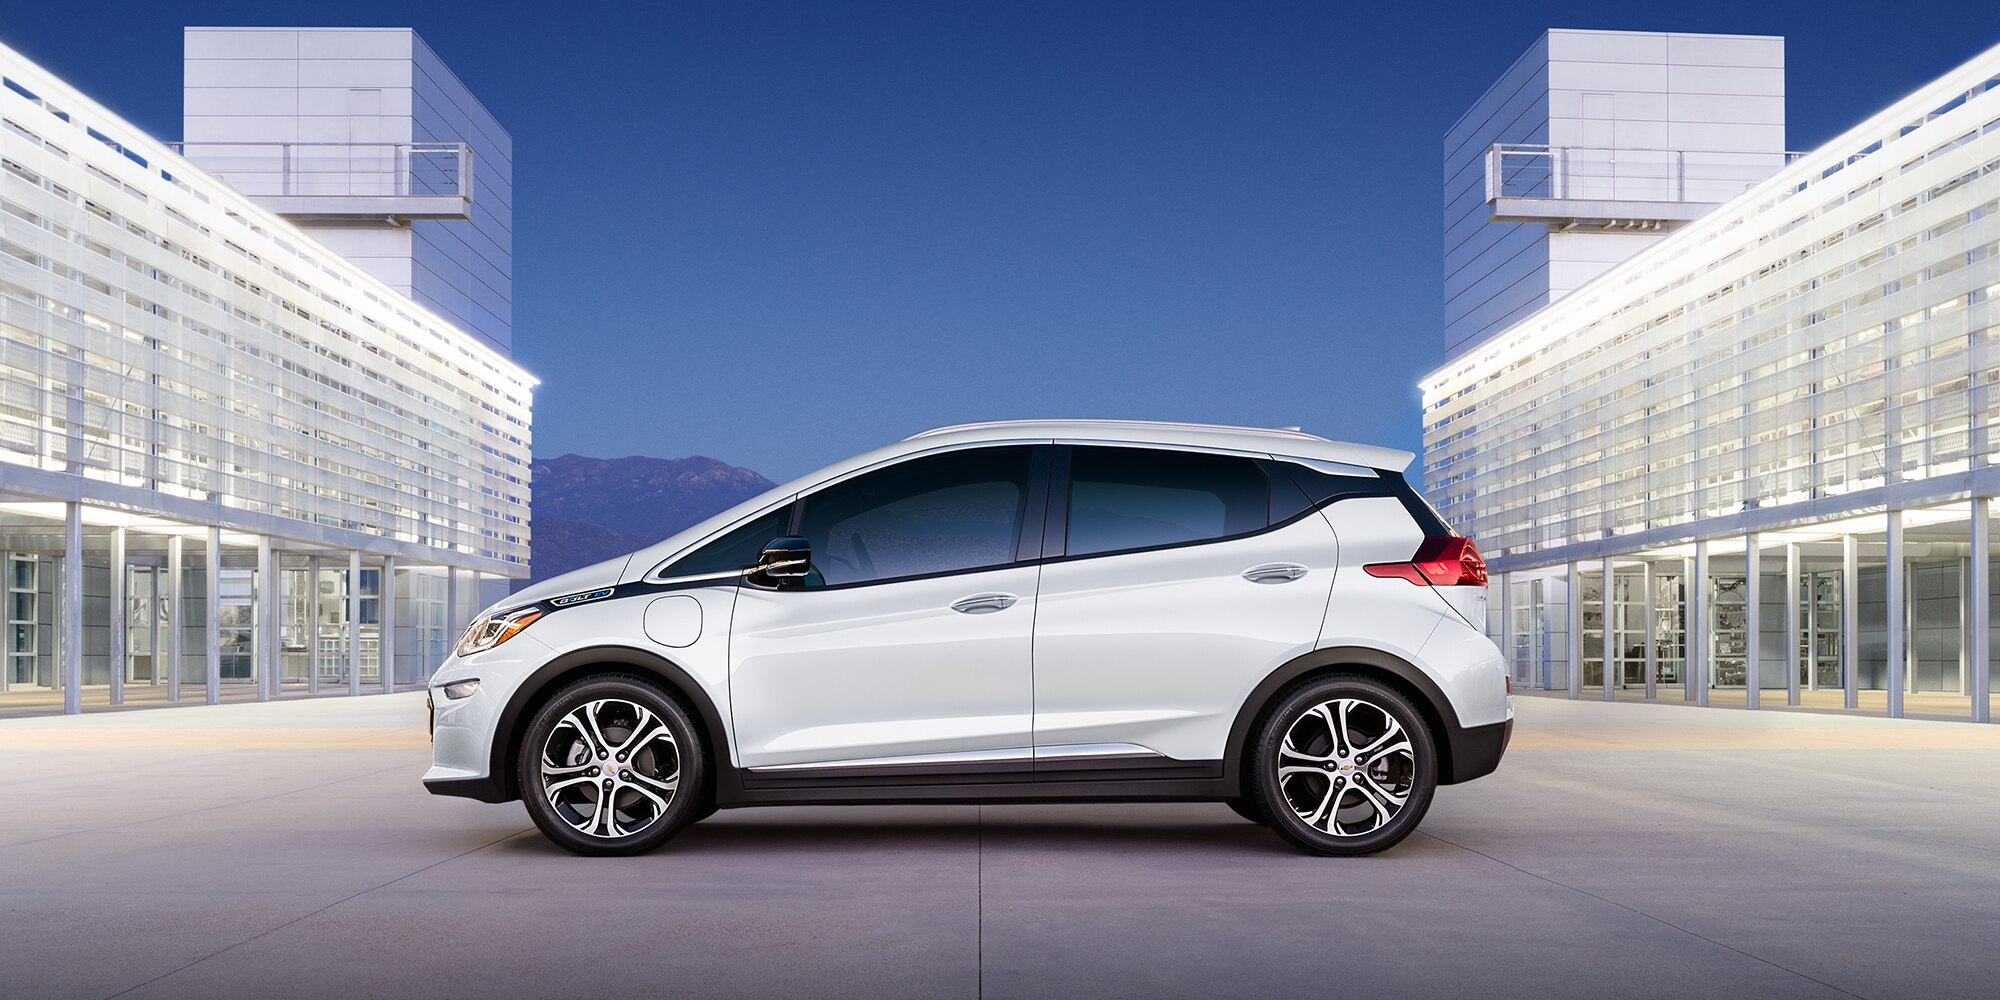 2019 Chevrolet Bolt EV for Sale near Lapeer, MI